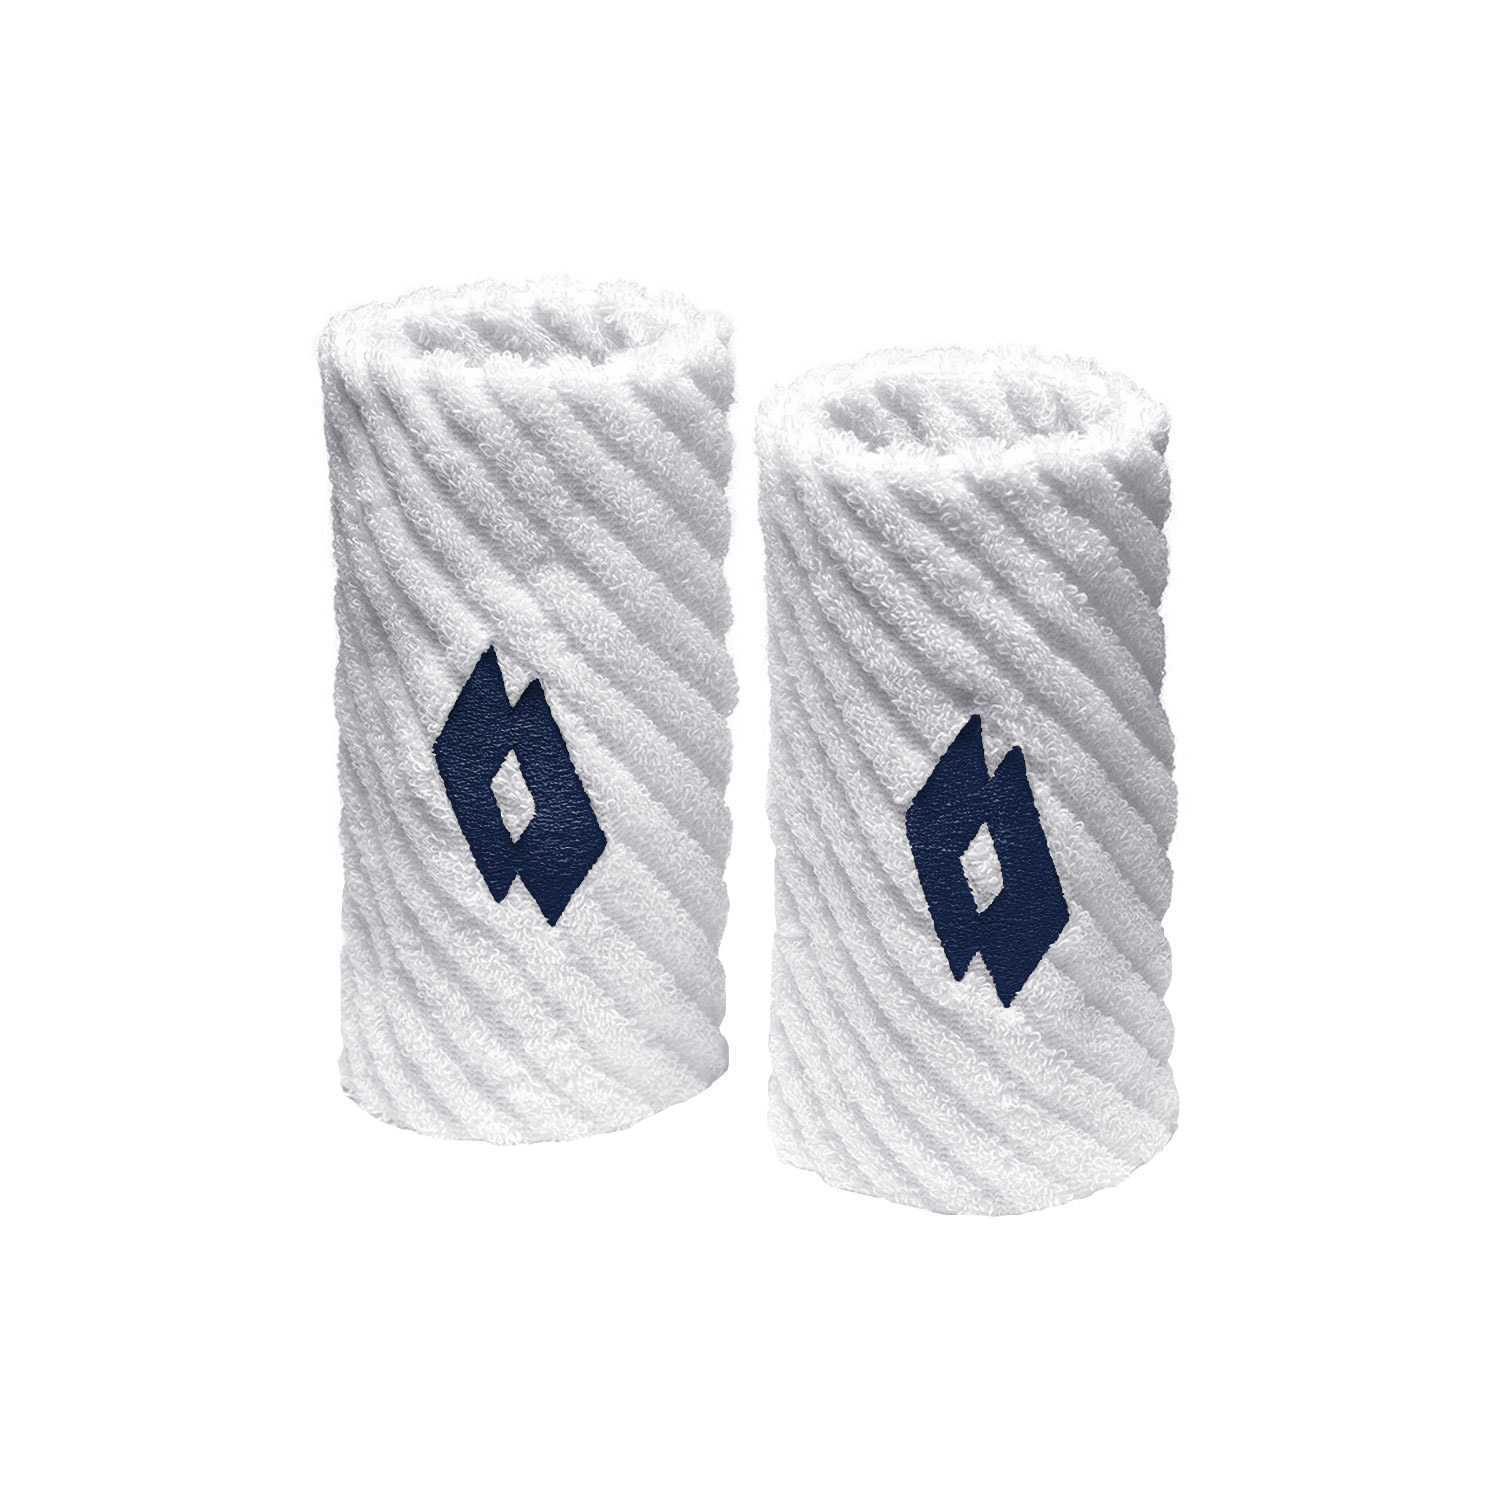 Lotto Twist Wristbands - White/Navy